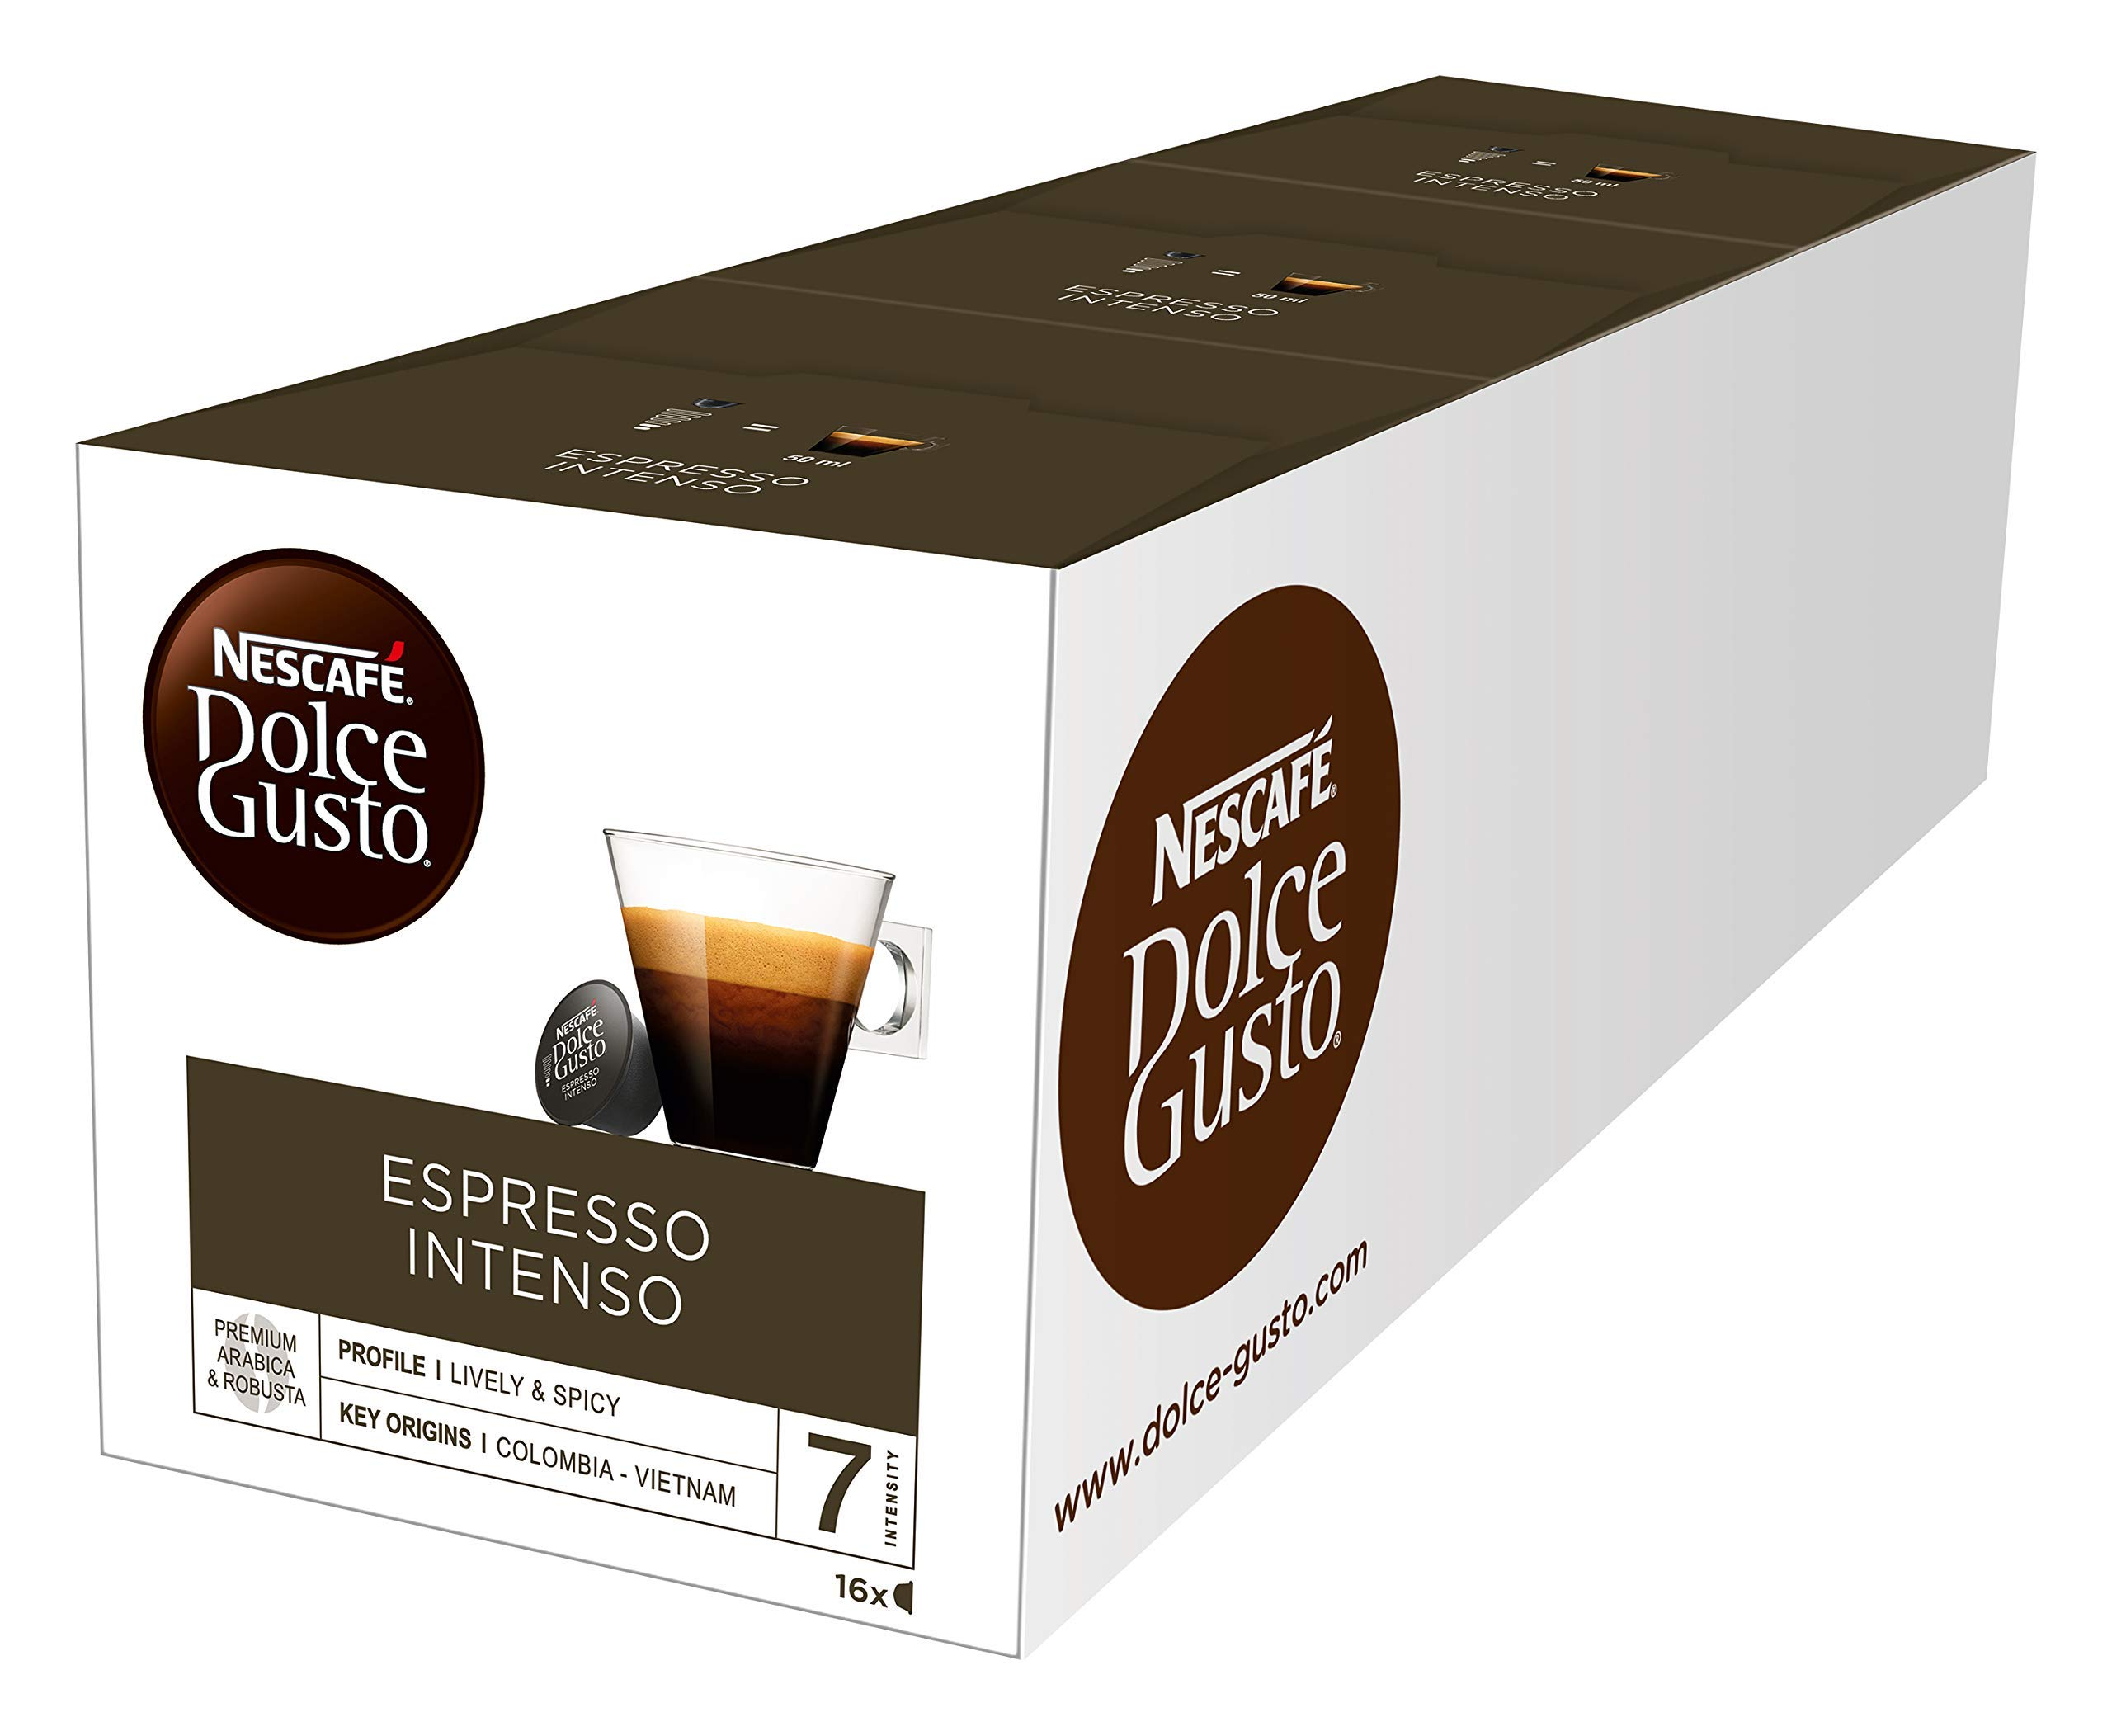 NESCAFÉ Dolce Gusto Espresso Intenso Coffee Pods, 16 capsules (48 Servings, Pack of 3, Total 48 Capsules)